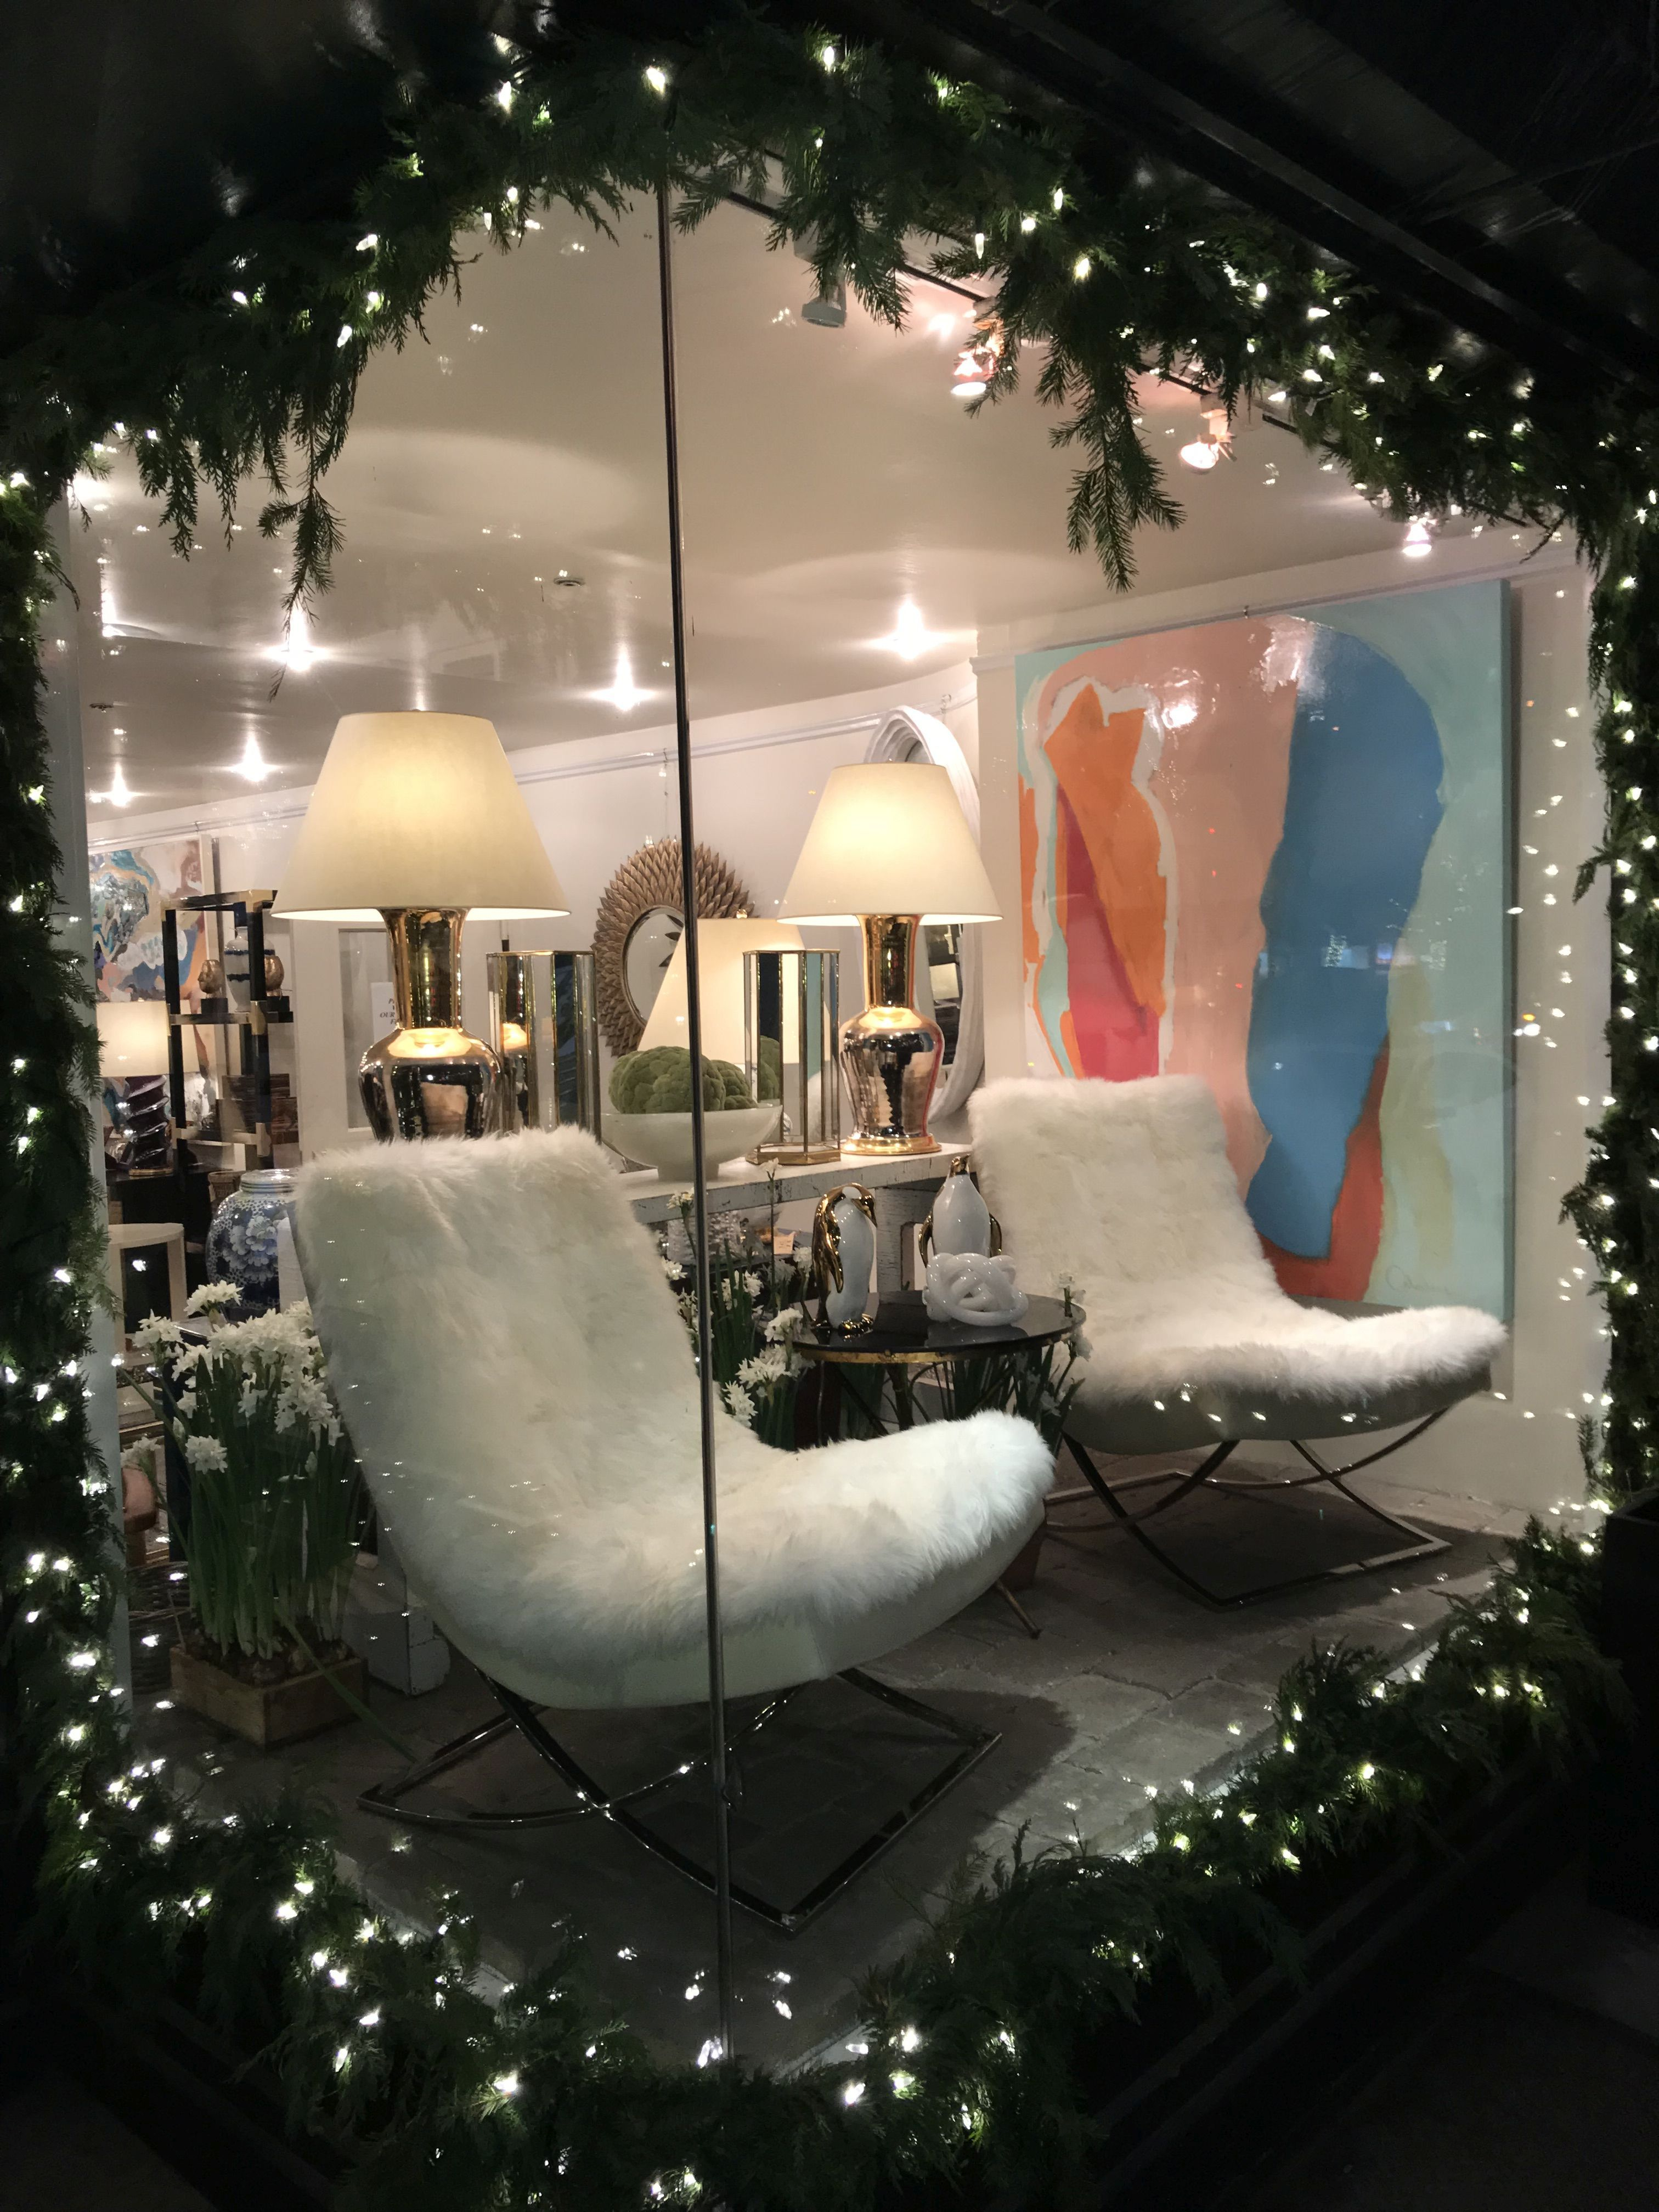 All of the lights highlighting this Mecox NYC #sheepskin #chairs ...